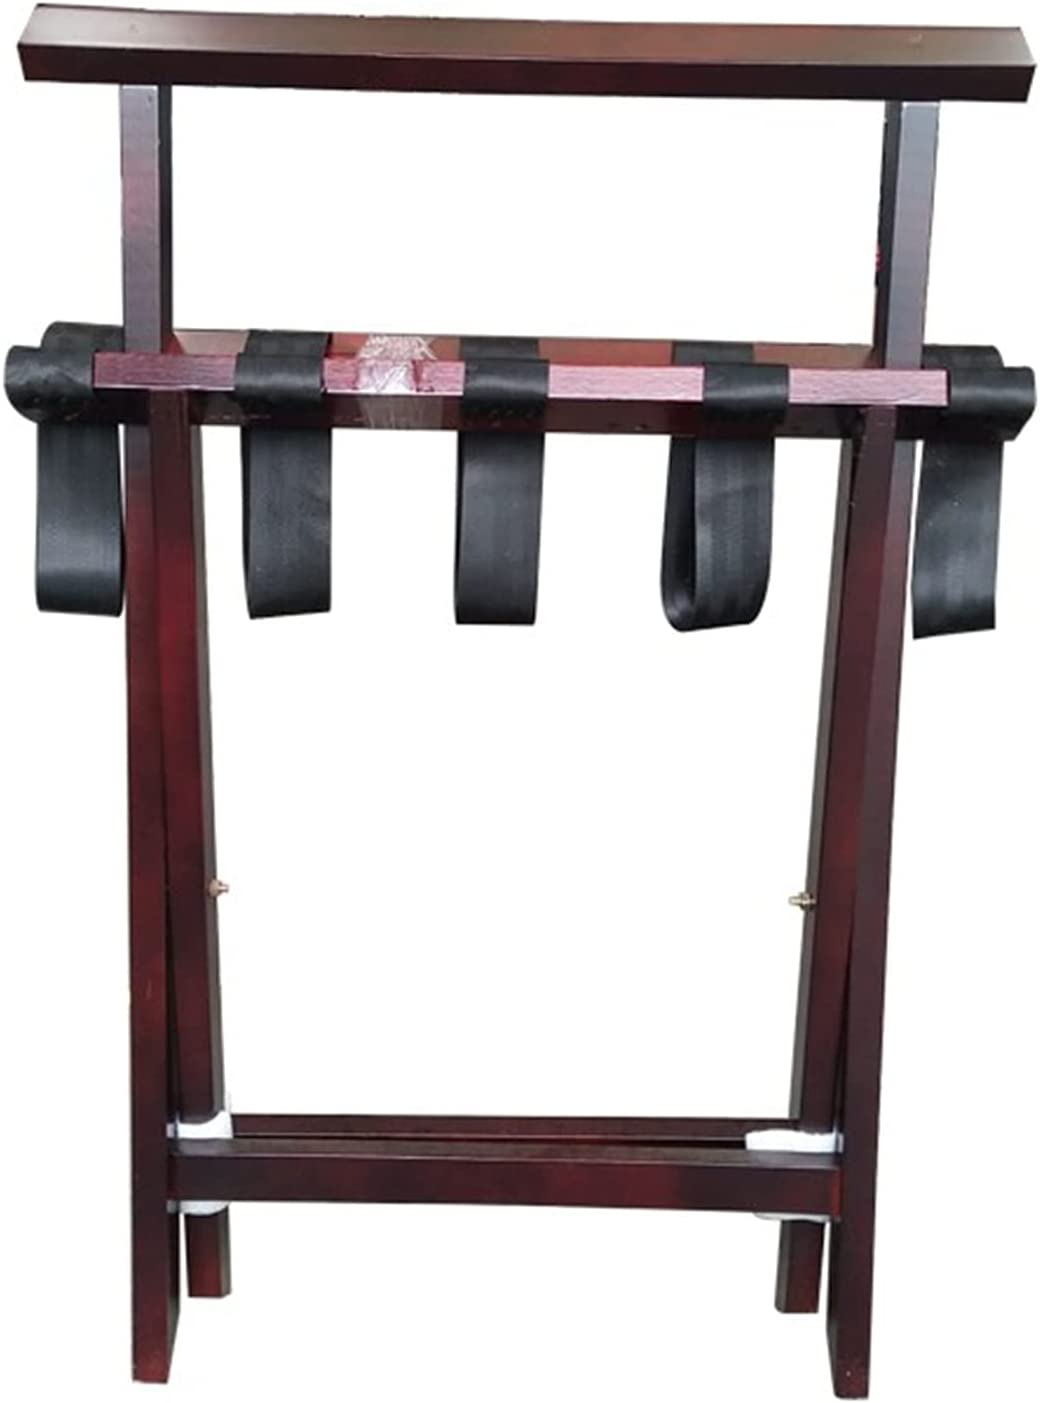 Lowest price challenge ZXFF Luggage Rack Bracket Hotel Room Foldable Year-end annual account Luggag Solid Wood